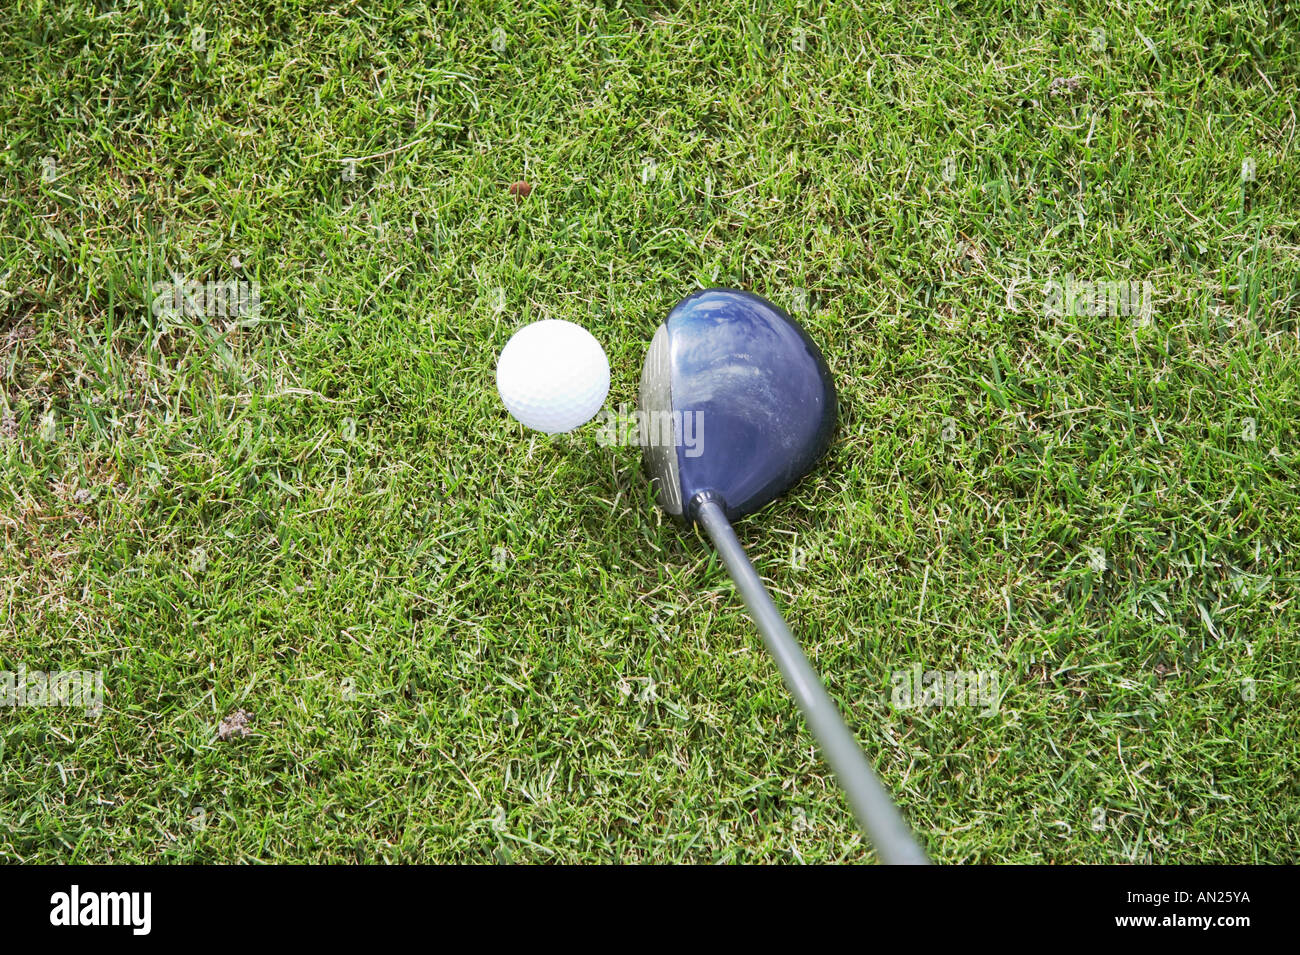 tee off and driving the golfball - Stock Image